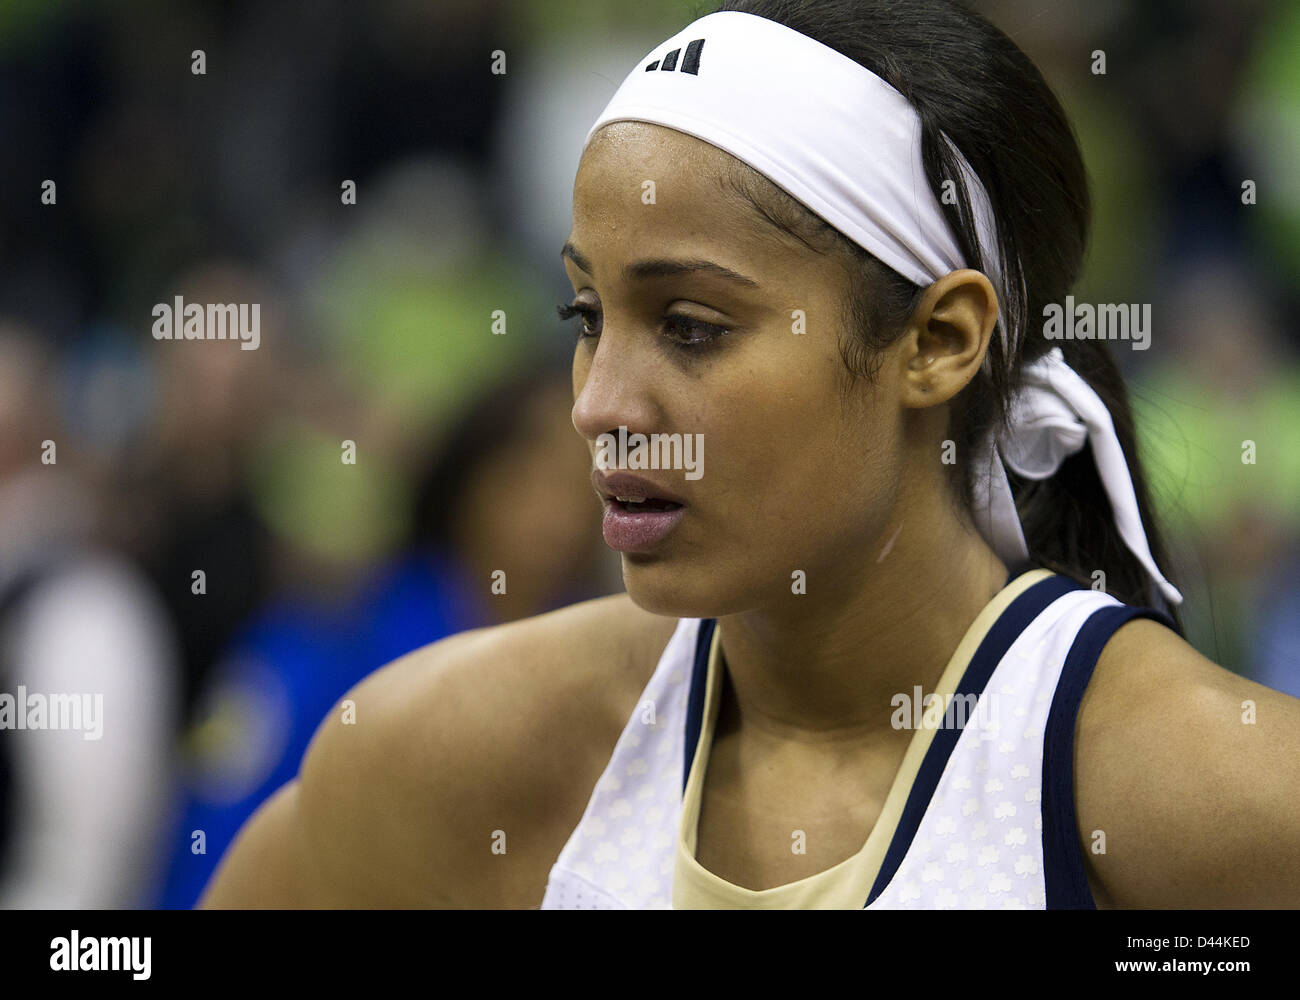 March 4, 2013 - South Bend, Indiana, United States of America - March 04, 2013: Notre Dame guard Skylar Diggins - Stock Image